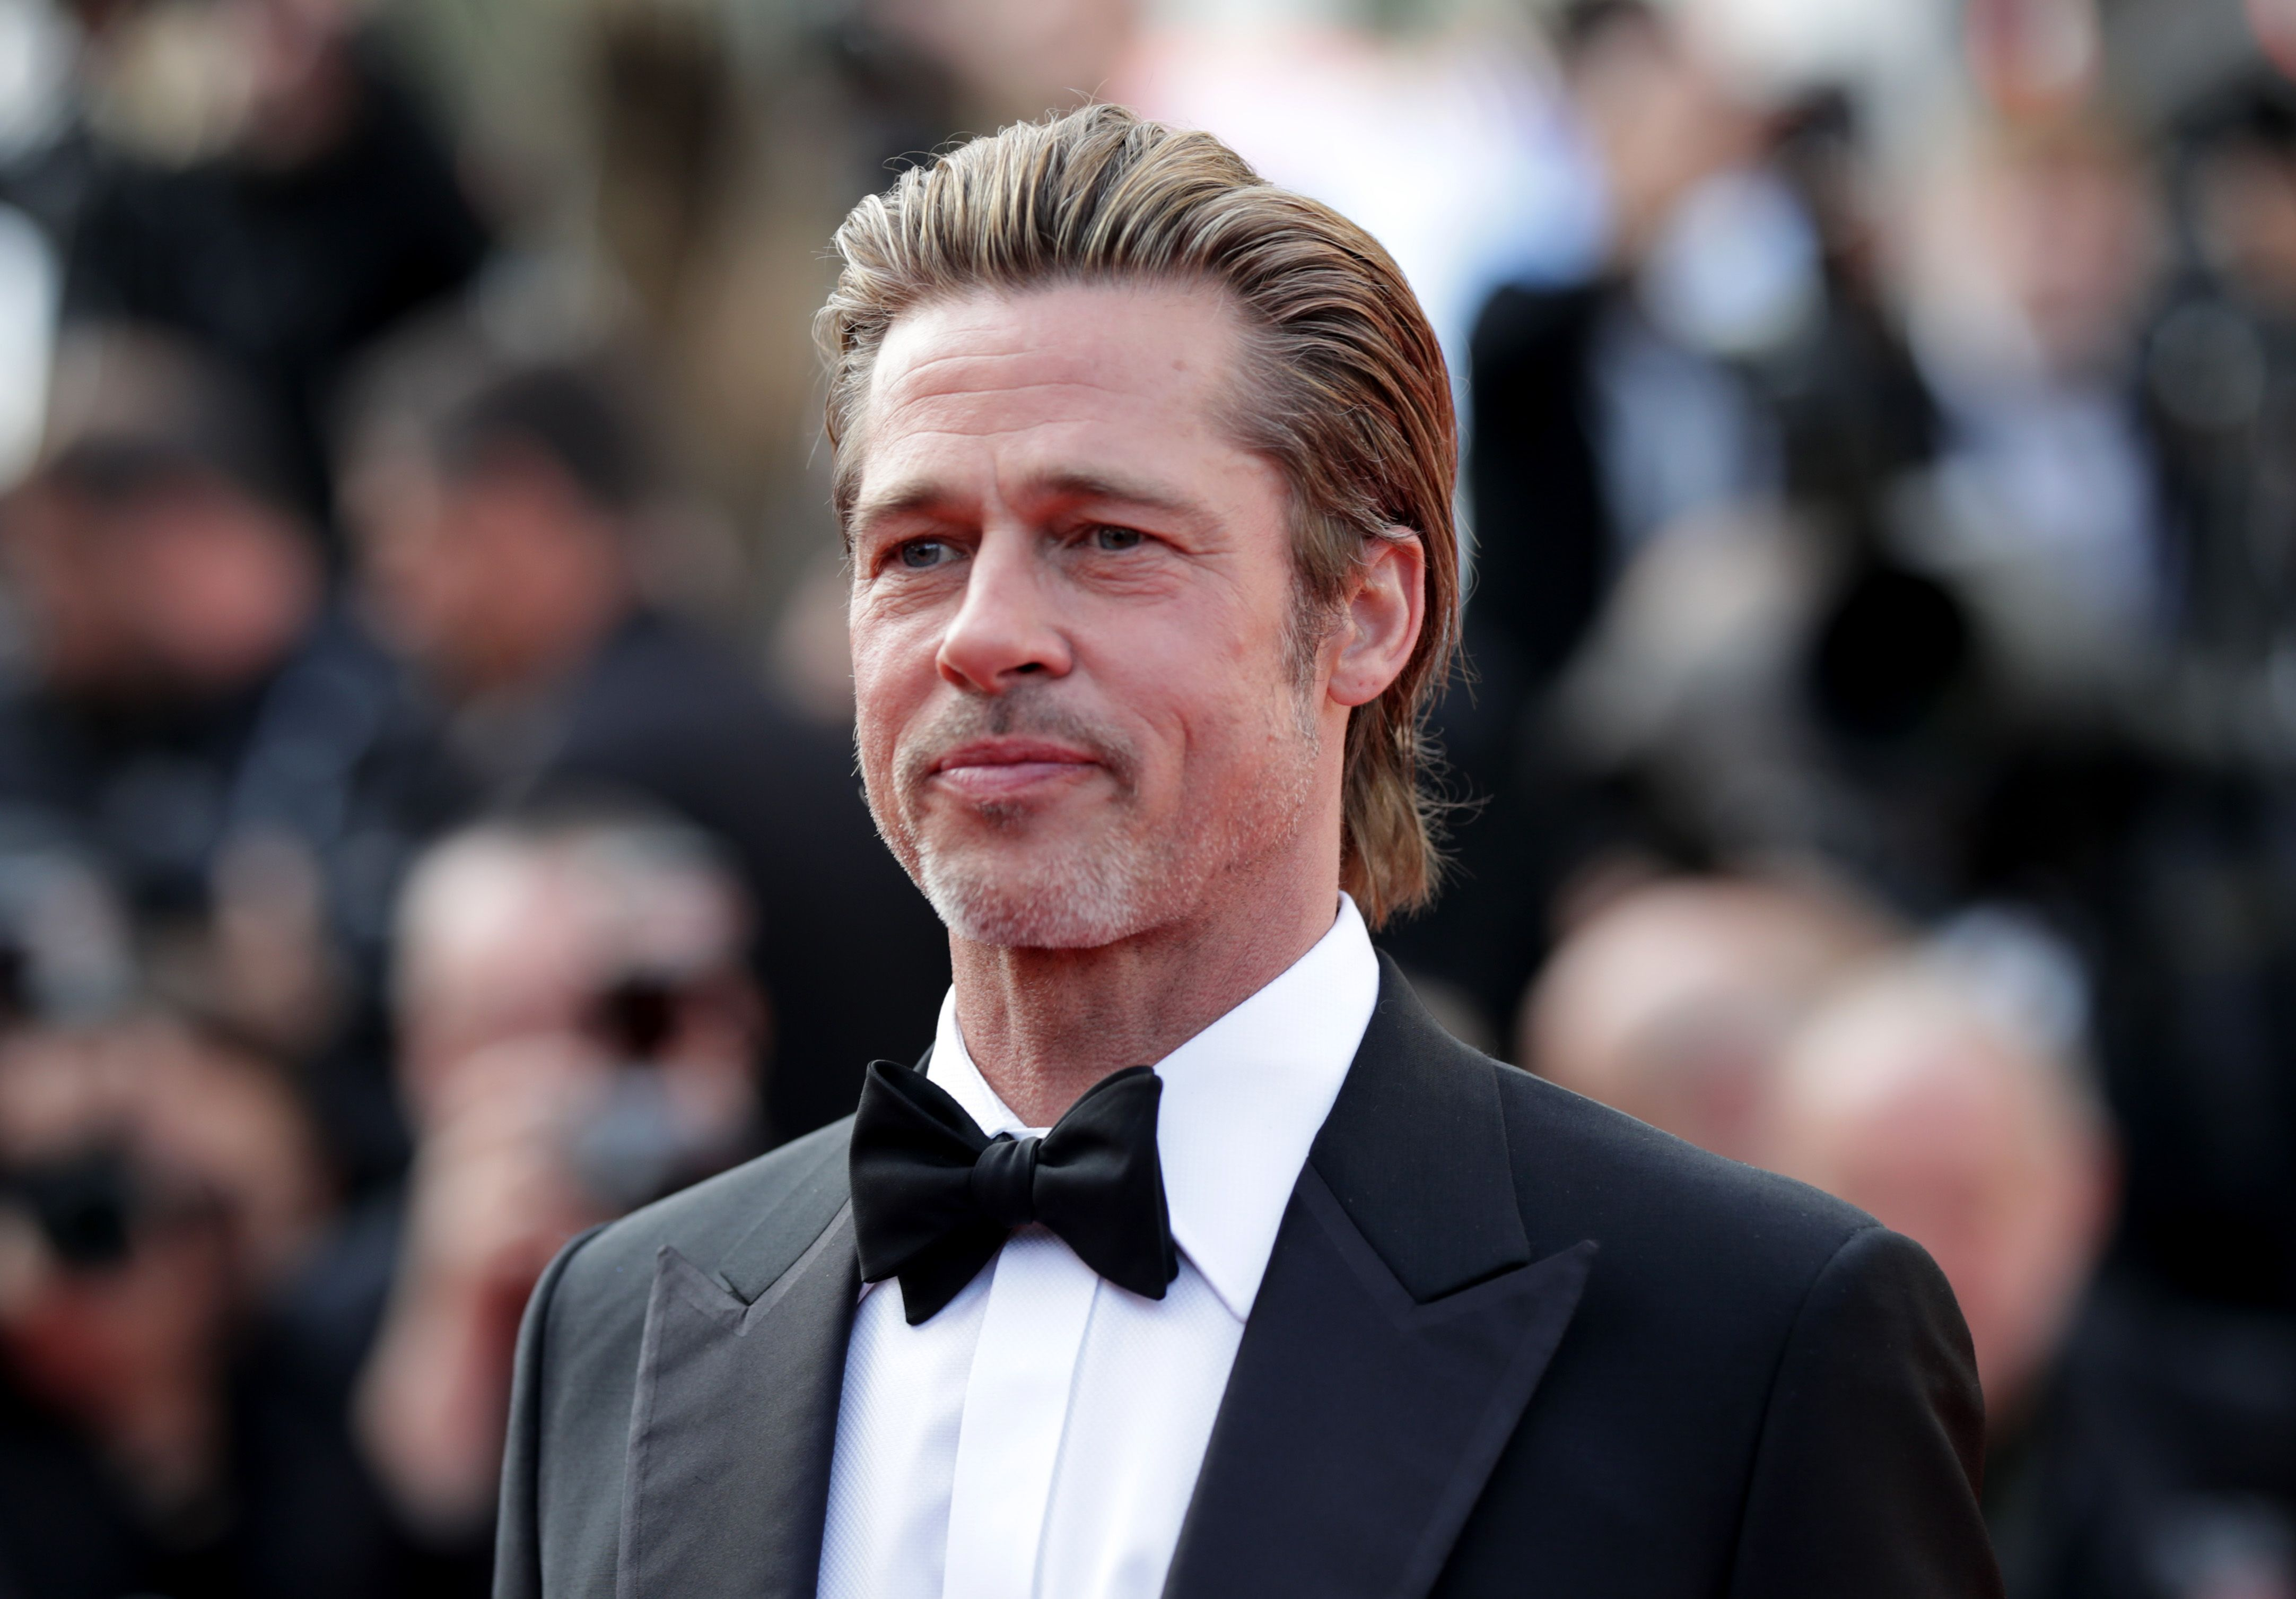 Brad Pitt might be making up with his ex Jennifer Aniston / Getty Images